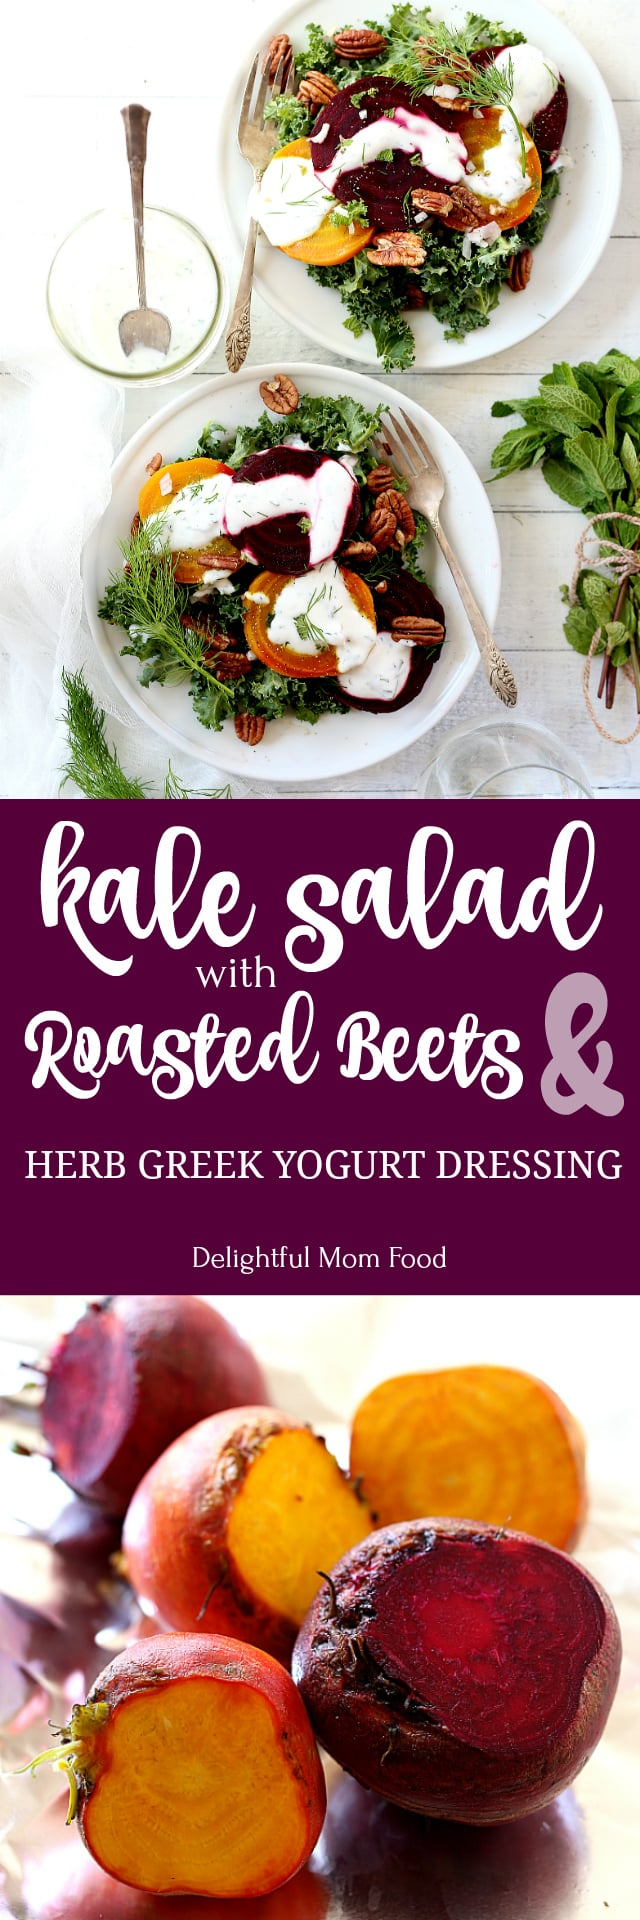 Roasted Beet Kale Salad With Herb Infused Non-Fat Greek Yogurt Dressing! This Greek yogurt dressing is easy and a perfect sauce for salads, meats and other roasted vegetables!